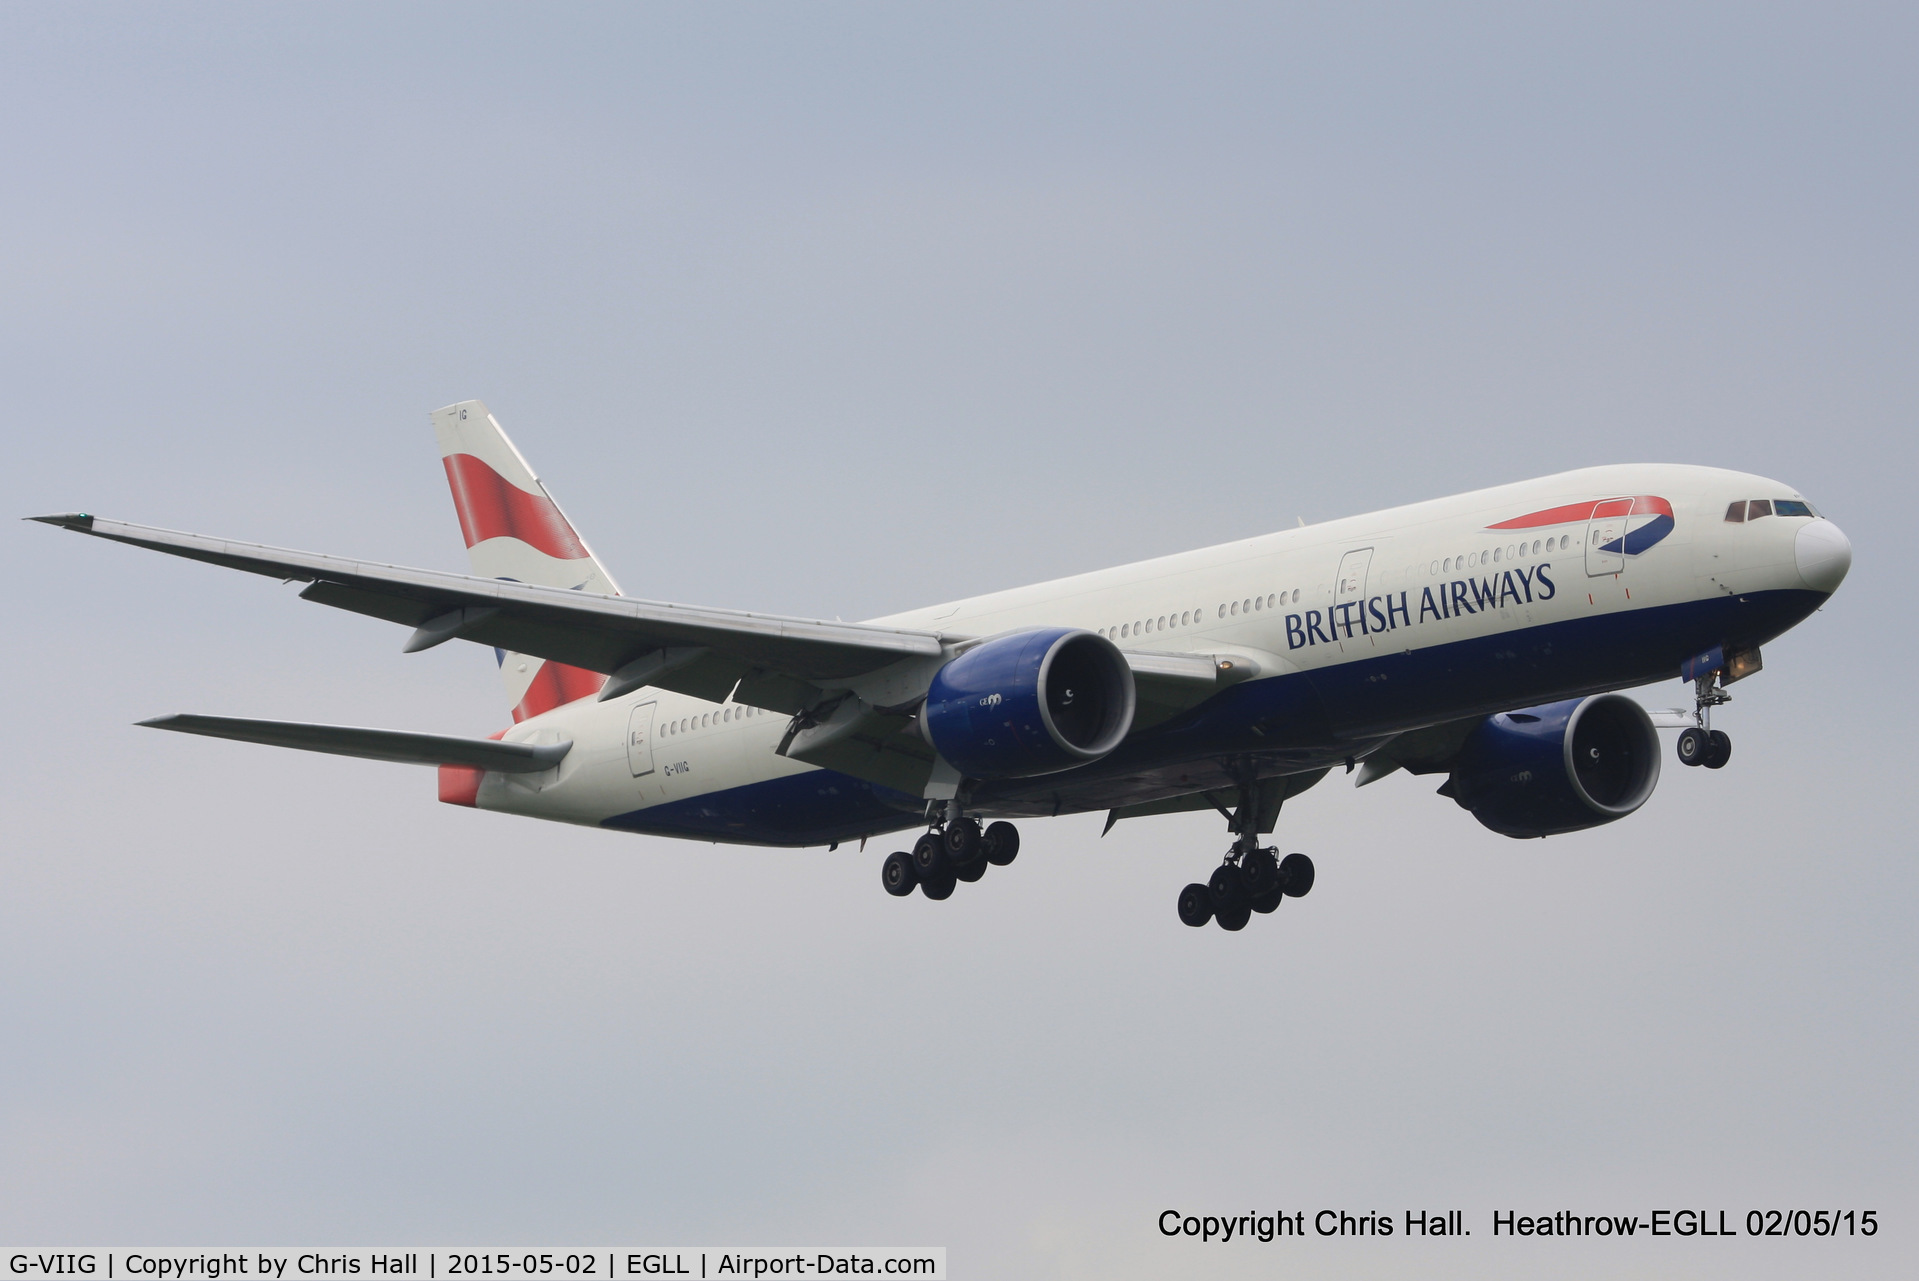 G-VIIG, 1997 Boeing 777-236/ER C/N 27489, British Airways